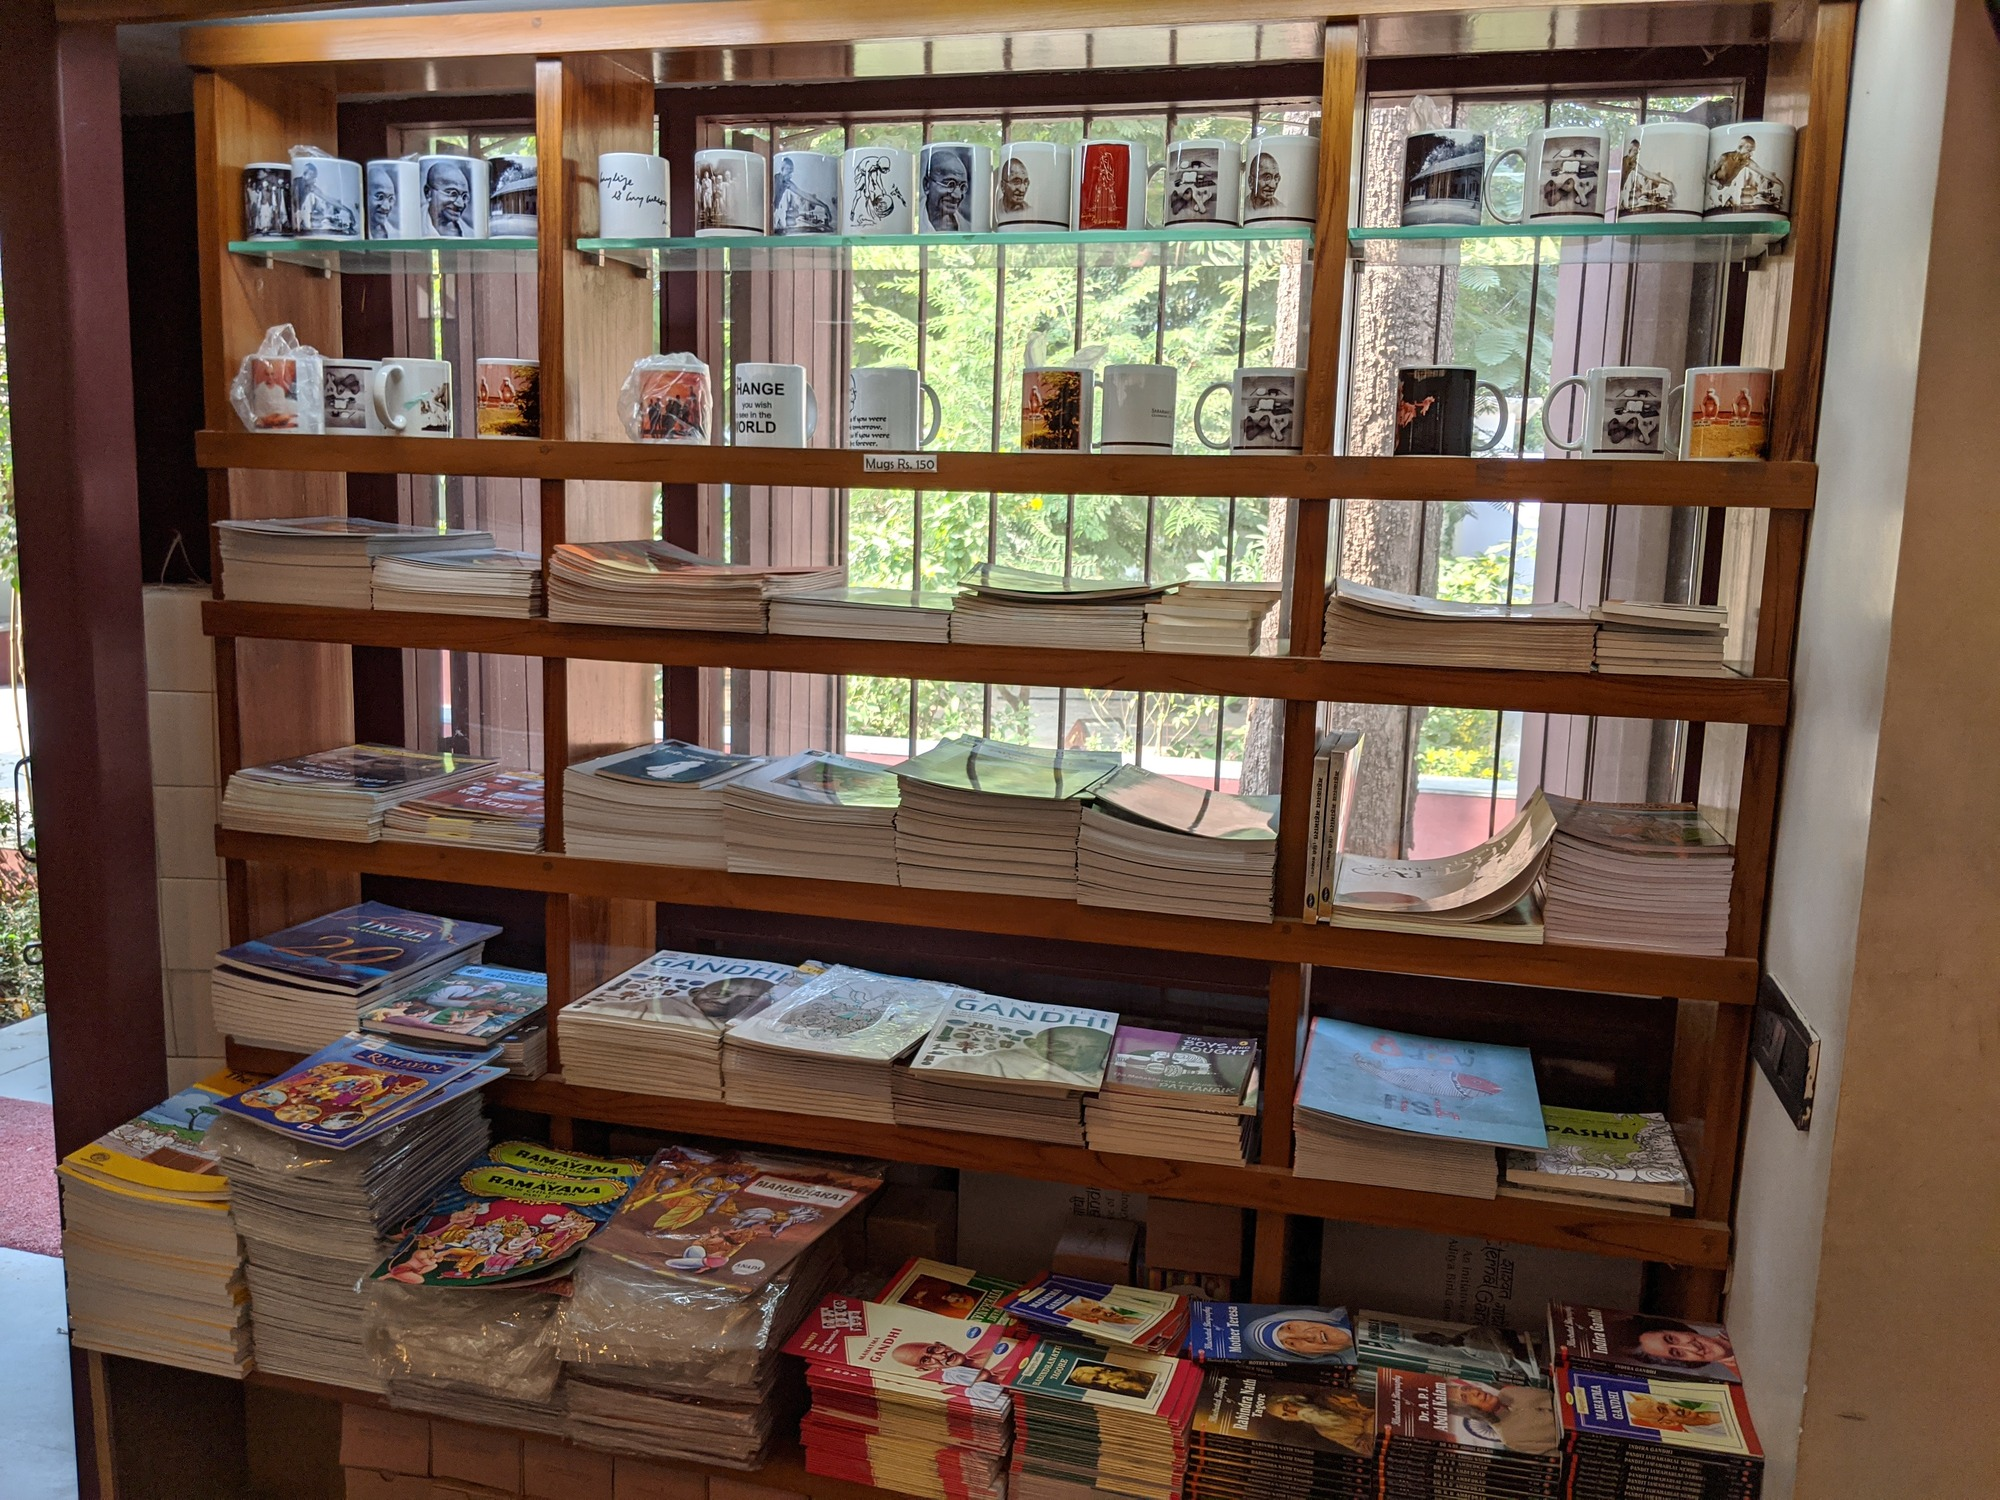 Store selling books written by Gandhi and various memorabilia about Gandhi